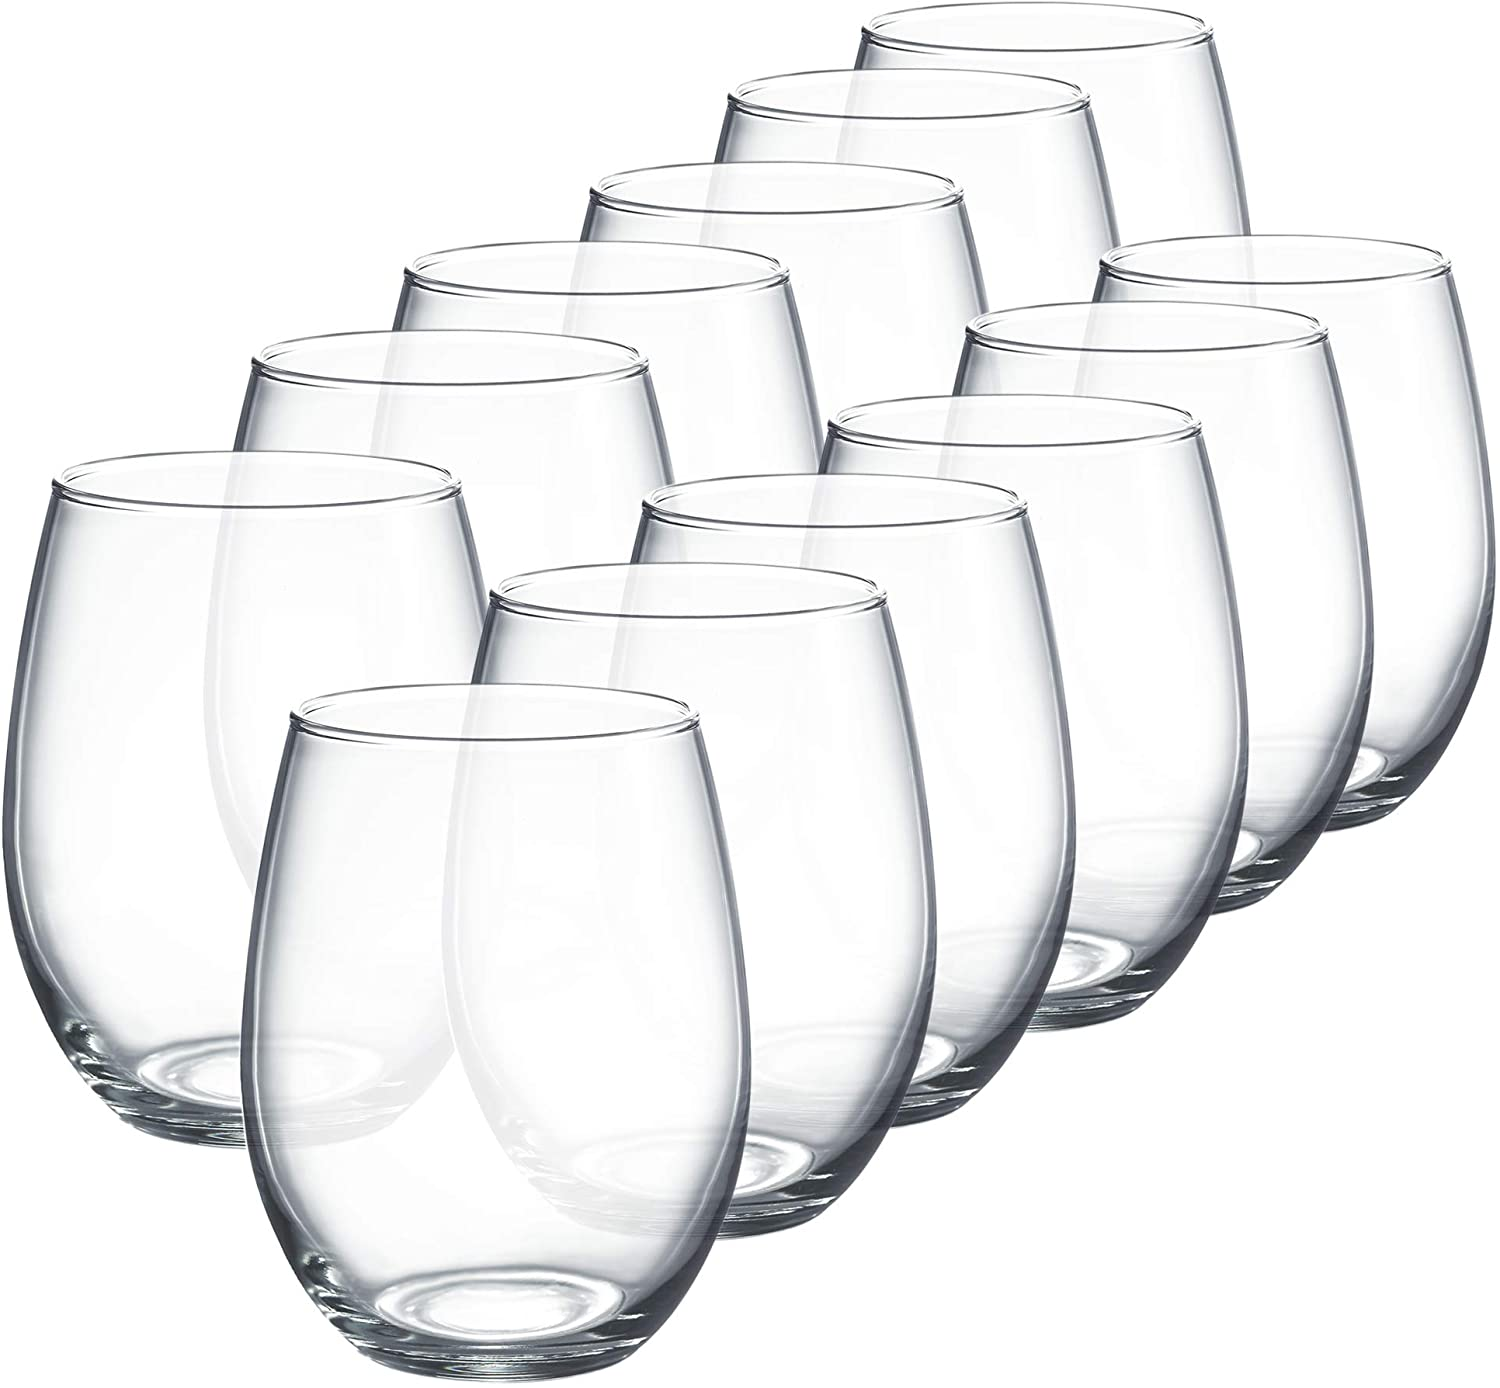 Luminarc Perfection Stemless Wine Glass Set Of 12 15 Oz Clear N0056 Amazon Ca Home Kitchen